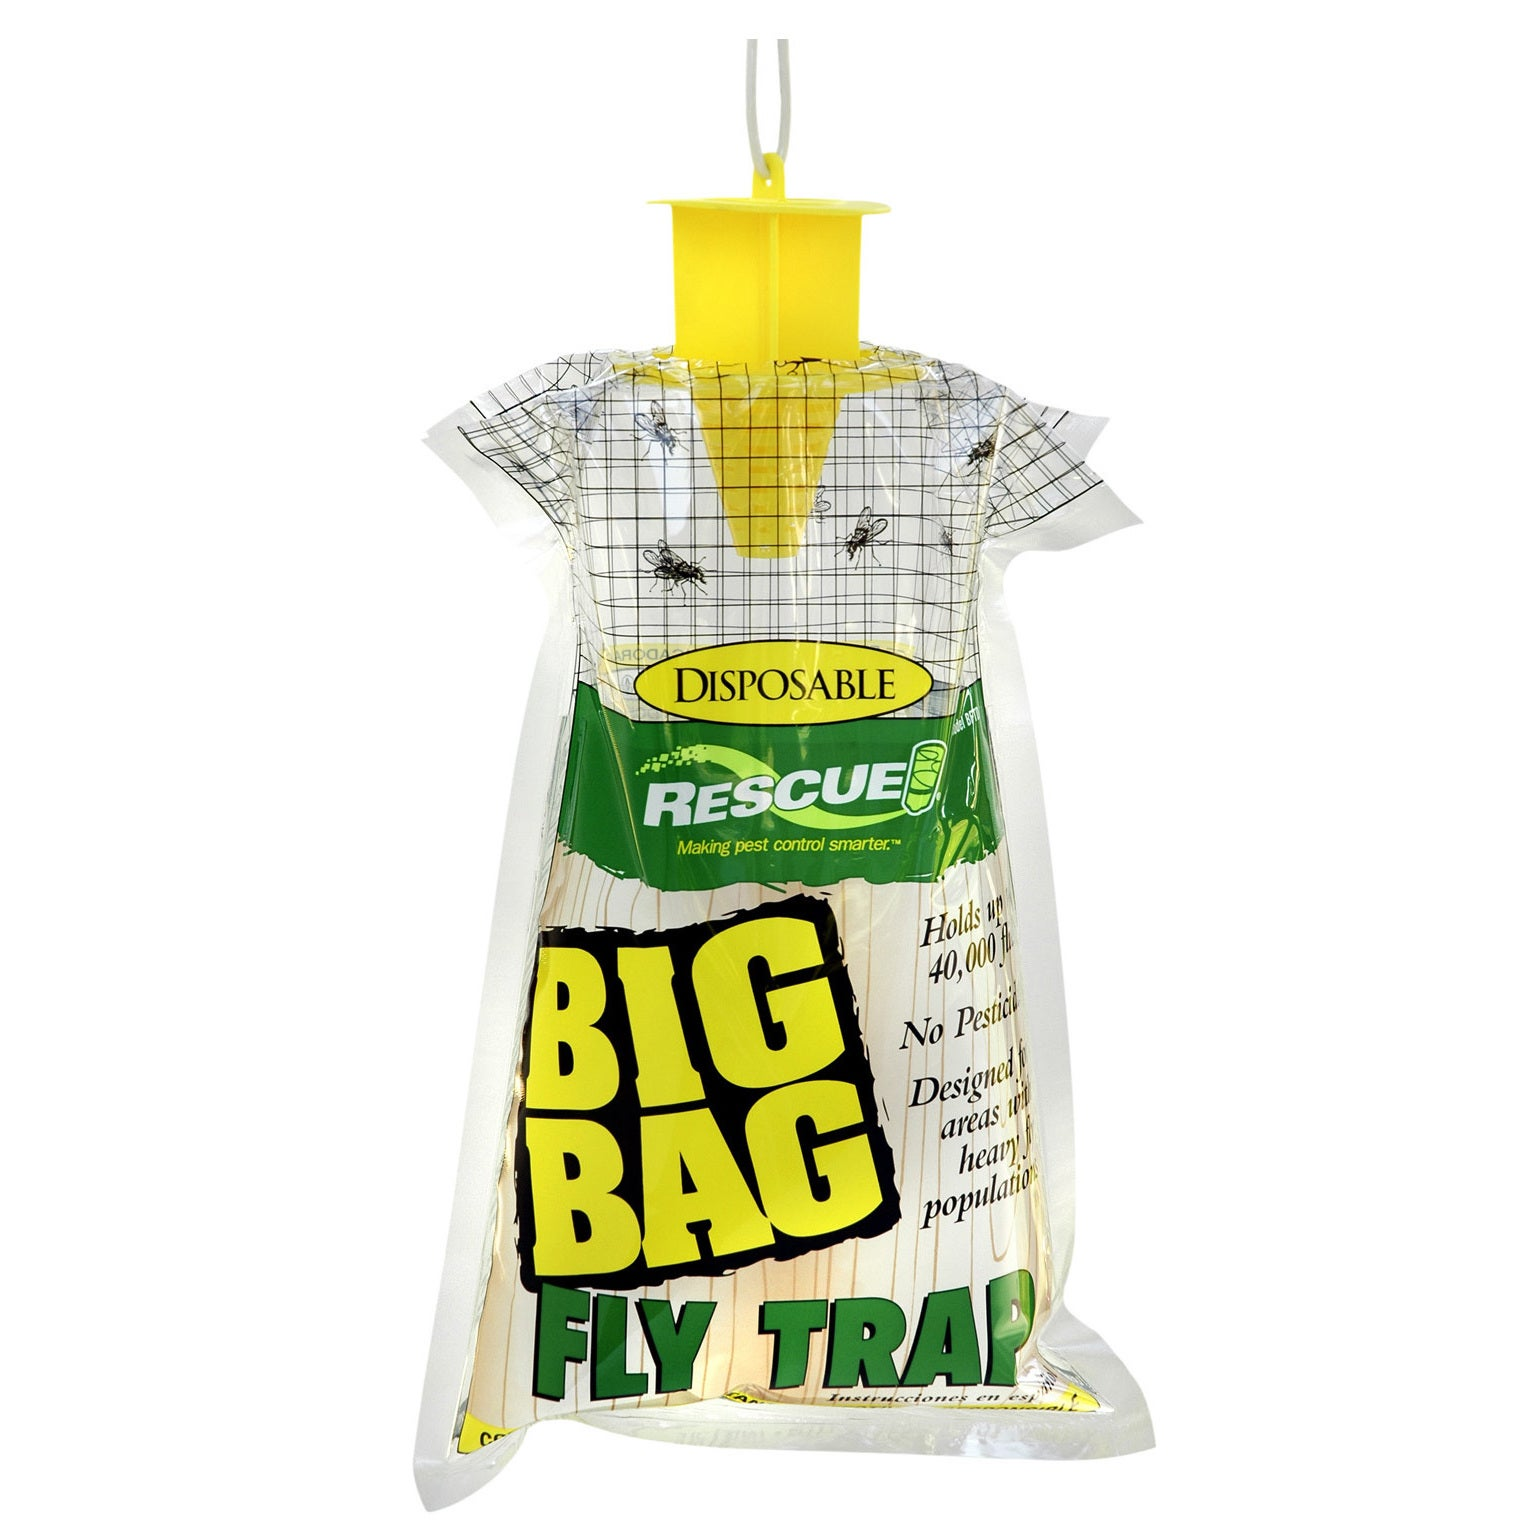 Rescue Bftd-DB12 Big Bag Fly Trap (Insect & Rodent Traps)...